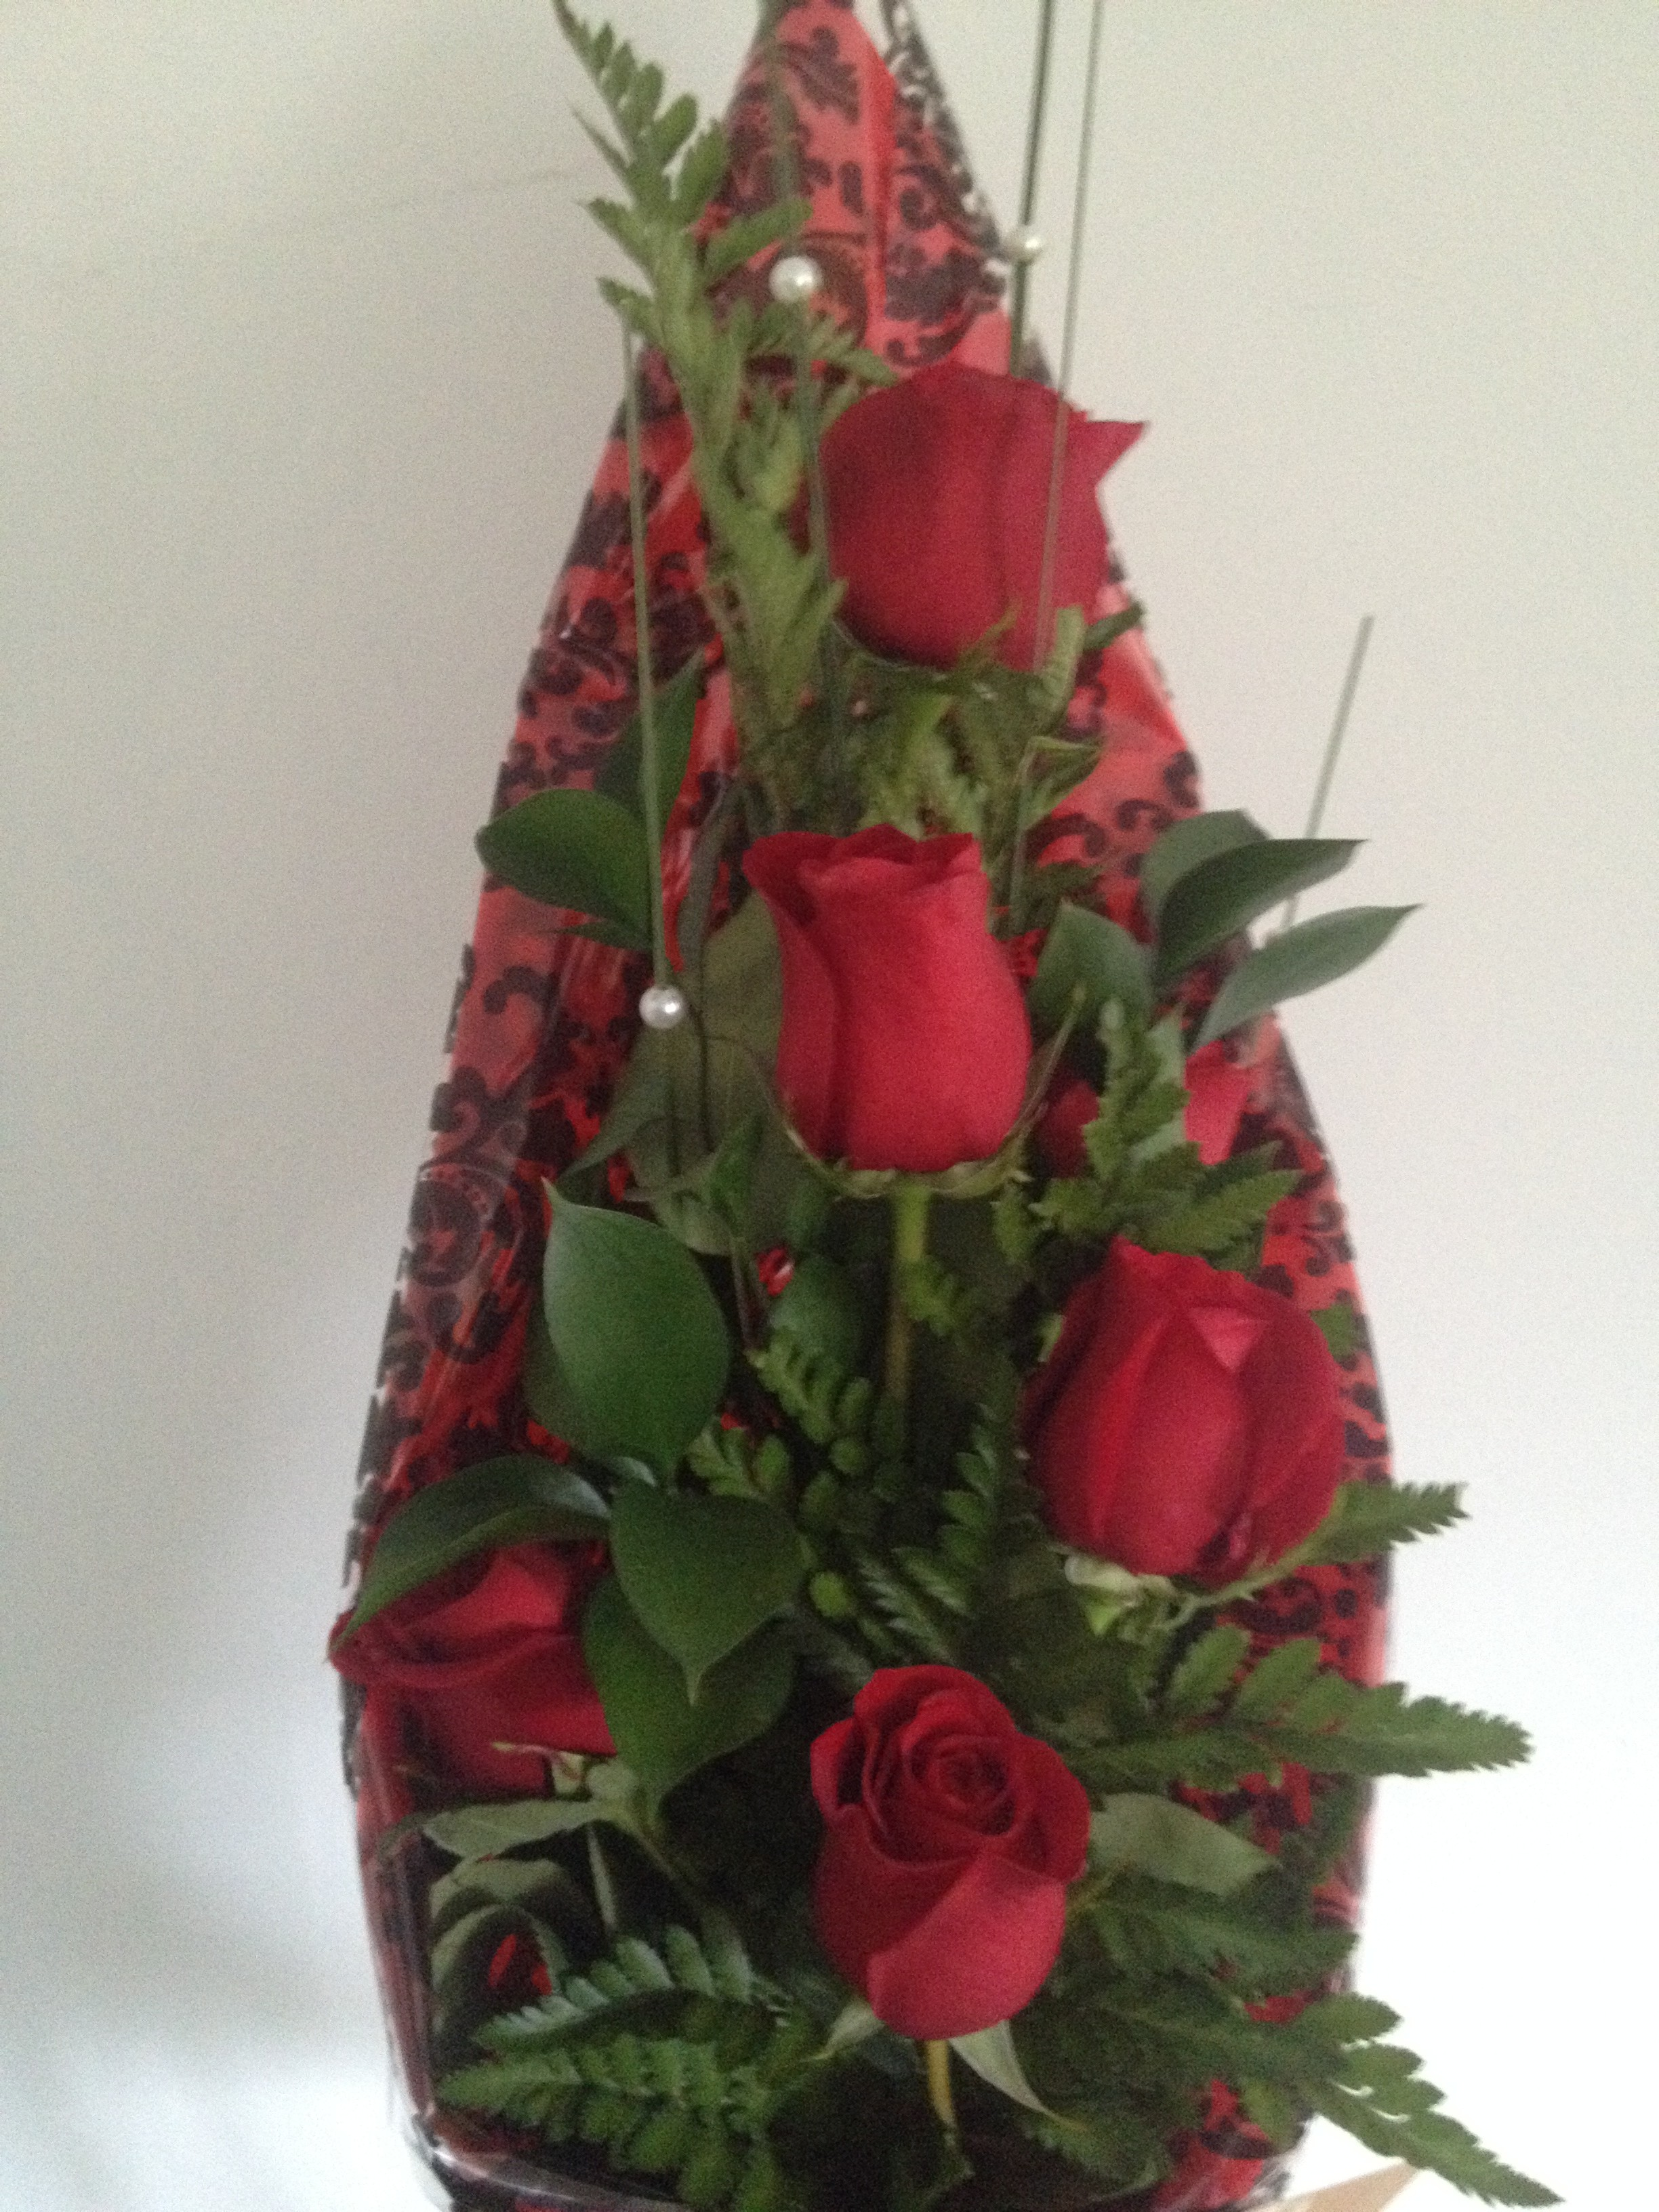 6 red roses on a modern kite design